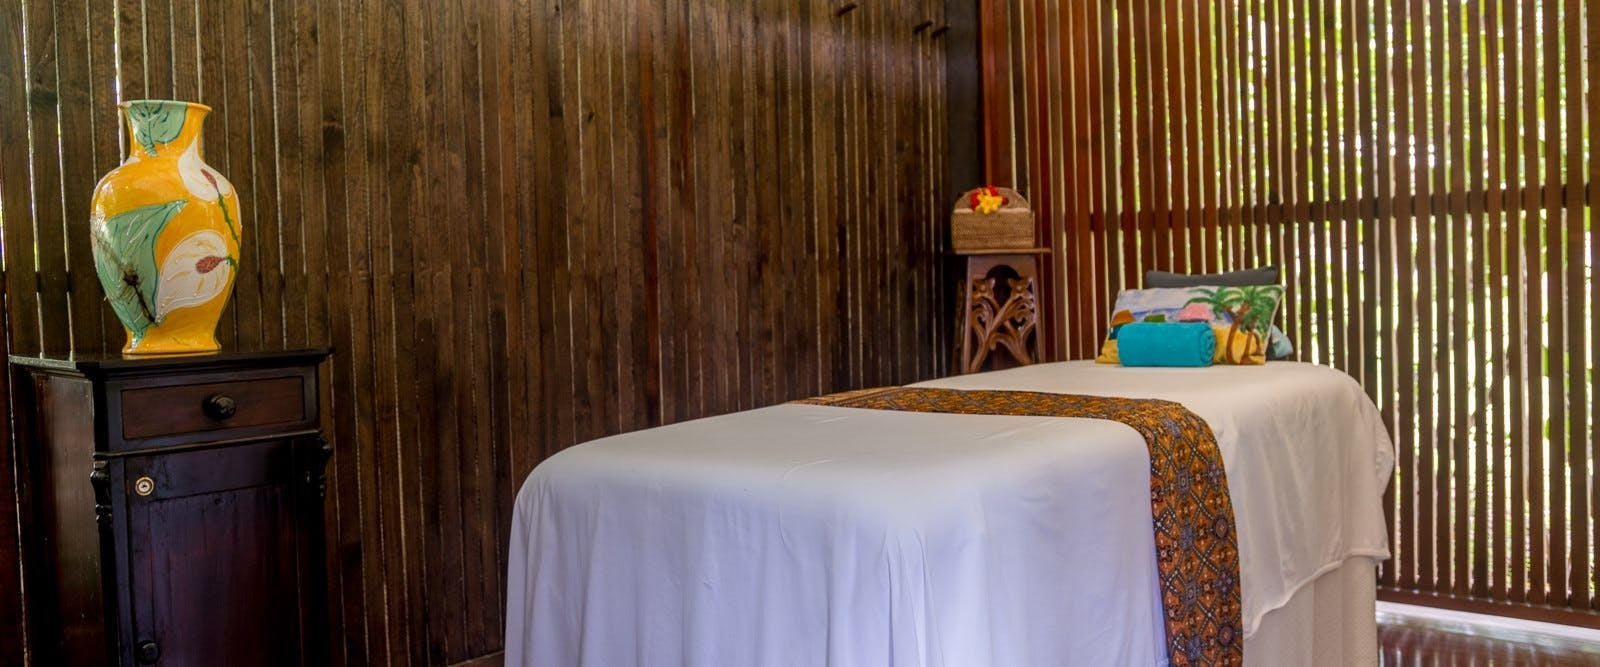 Spa treatment room at East Winds, St Lucia